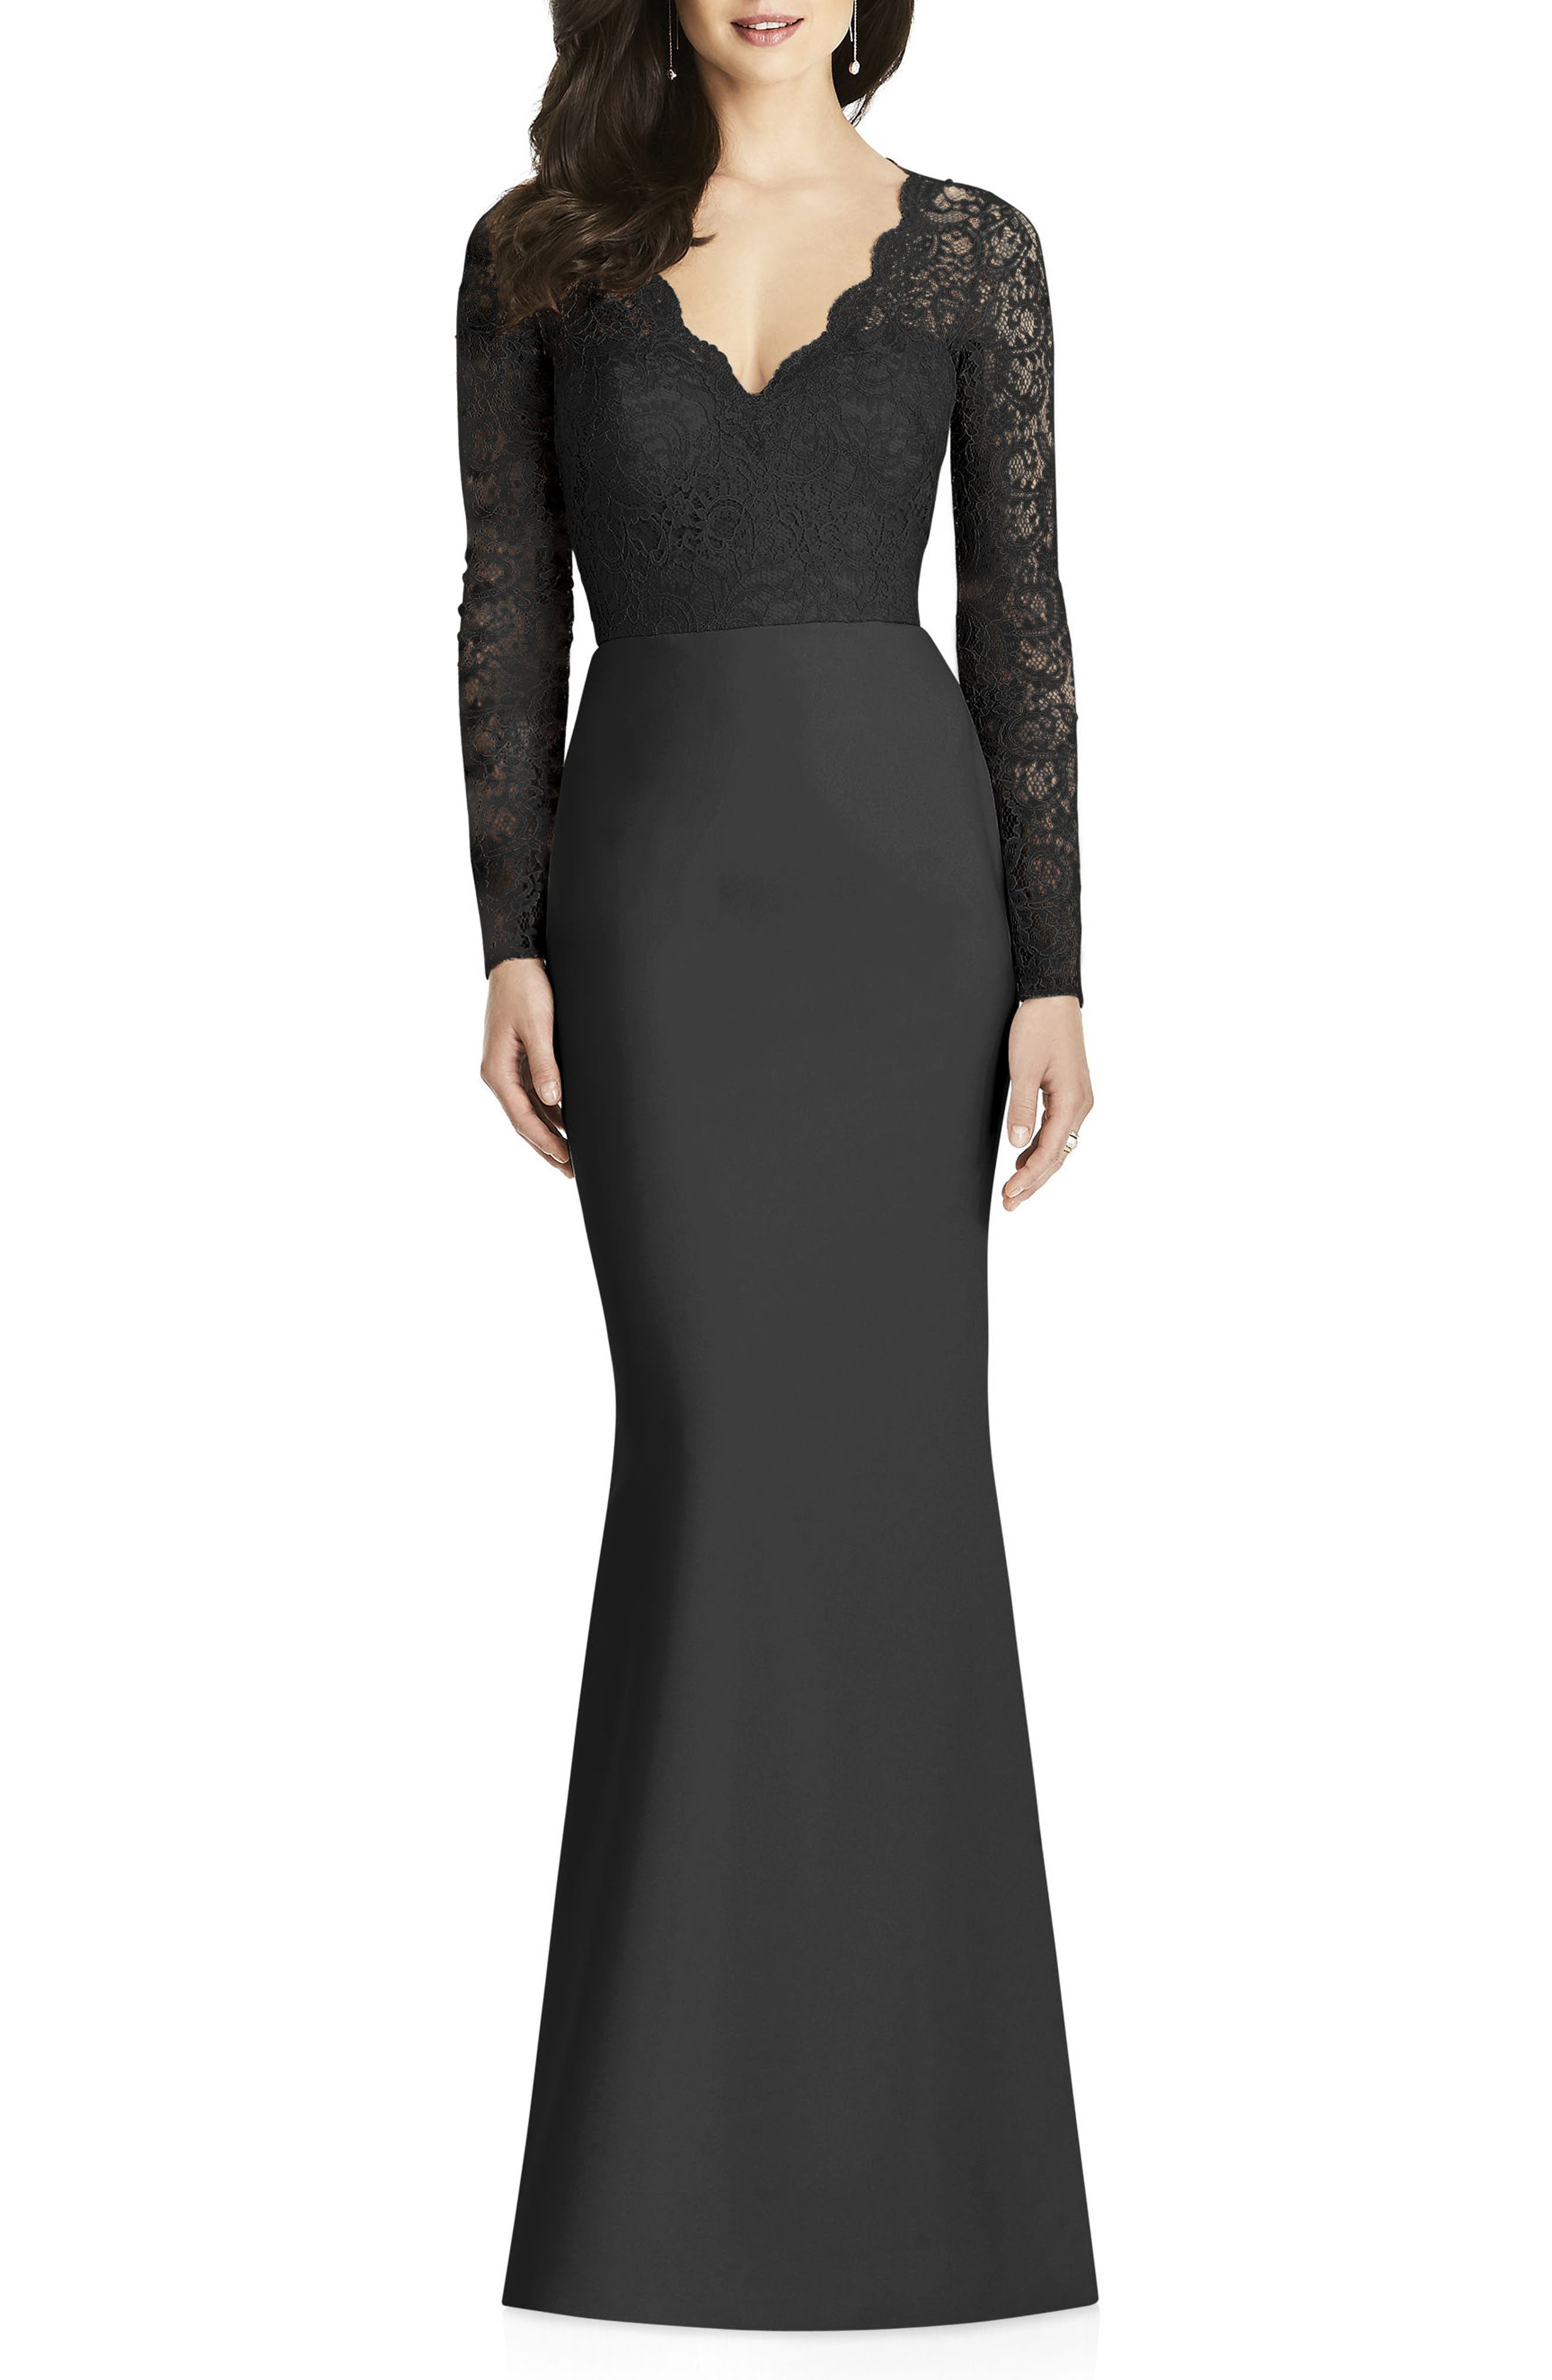 DESSY COLLECTION Lace & Crepe Trumpet Gown, Main, color, BLACK